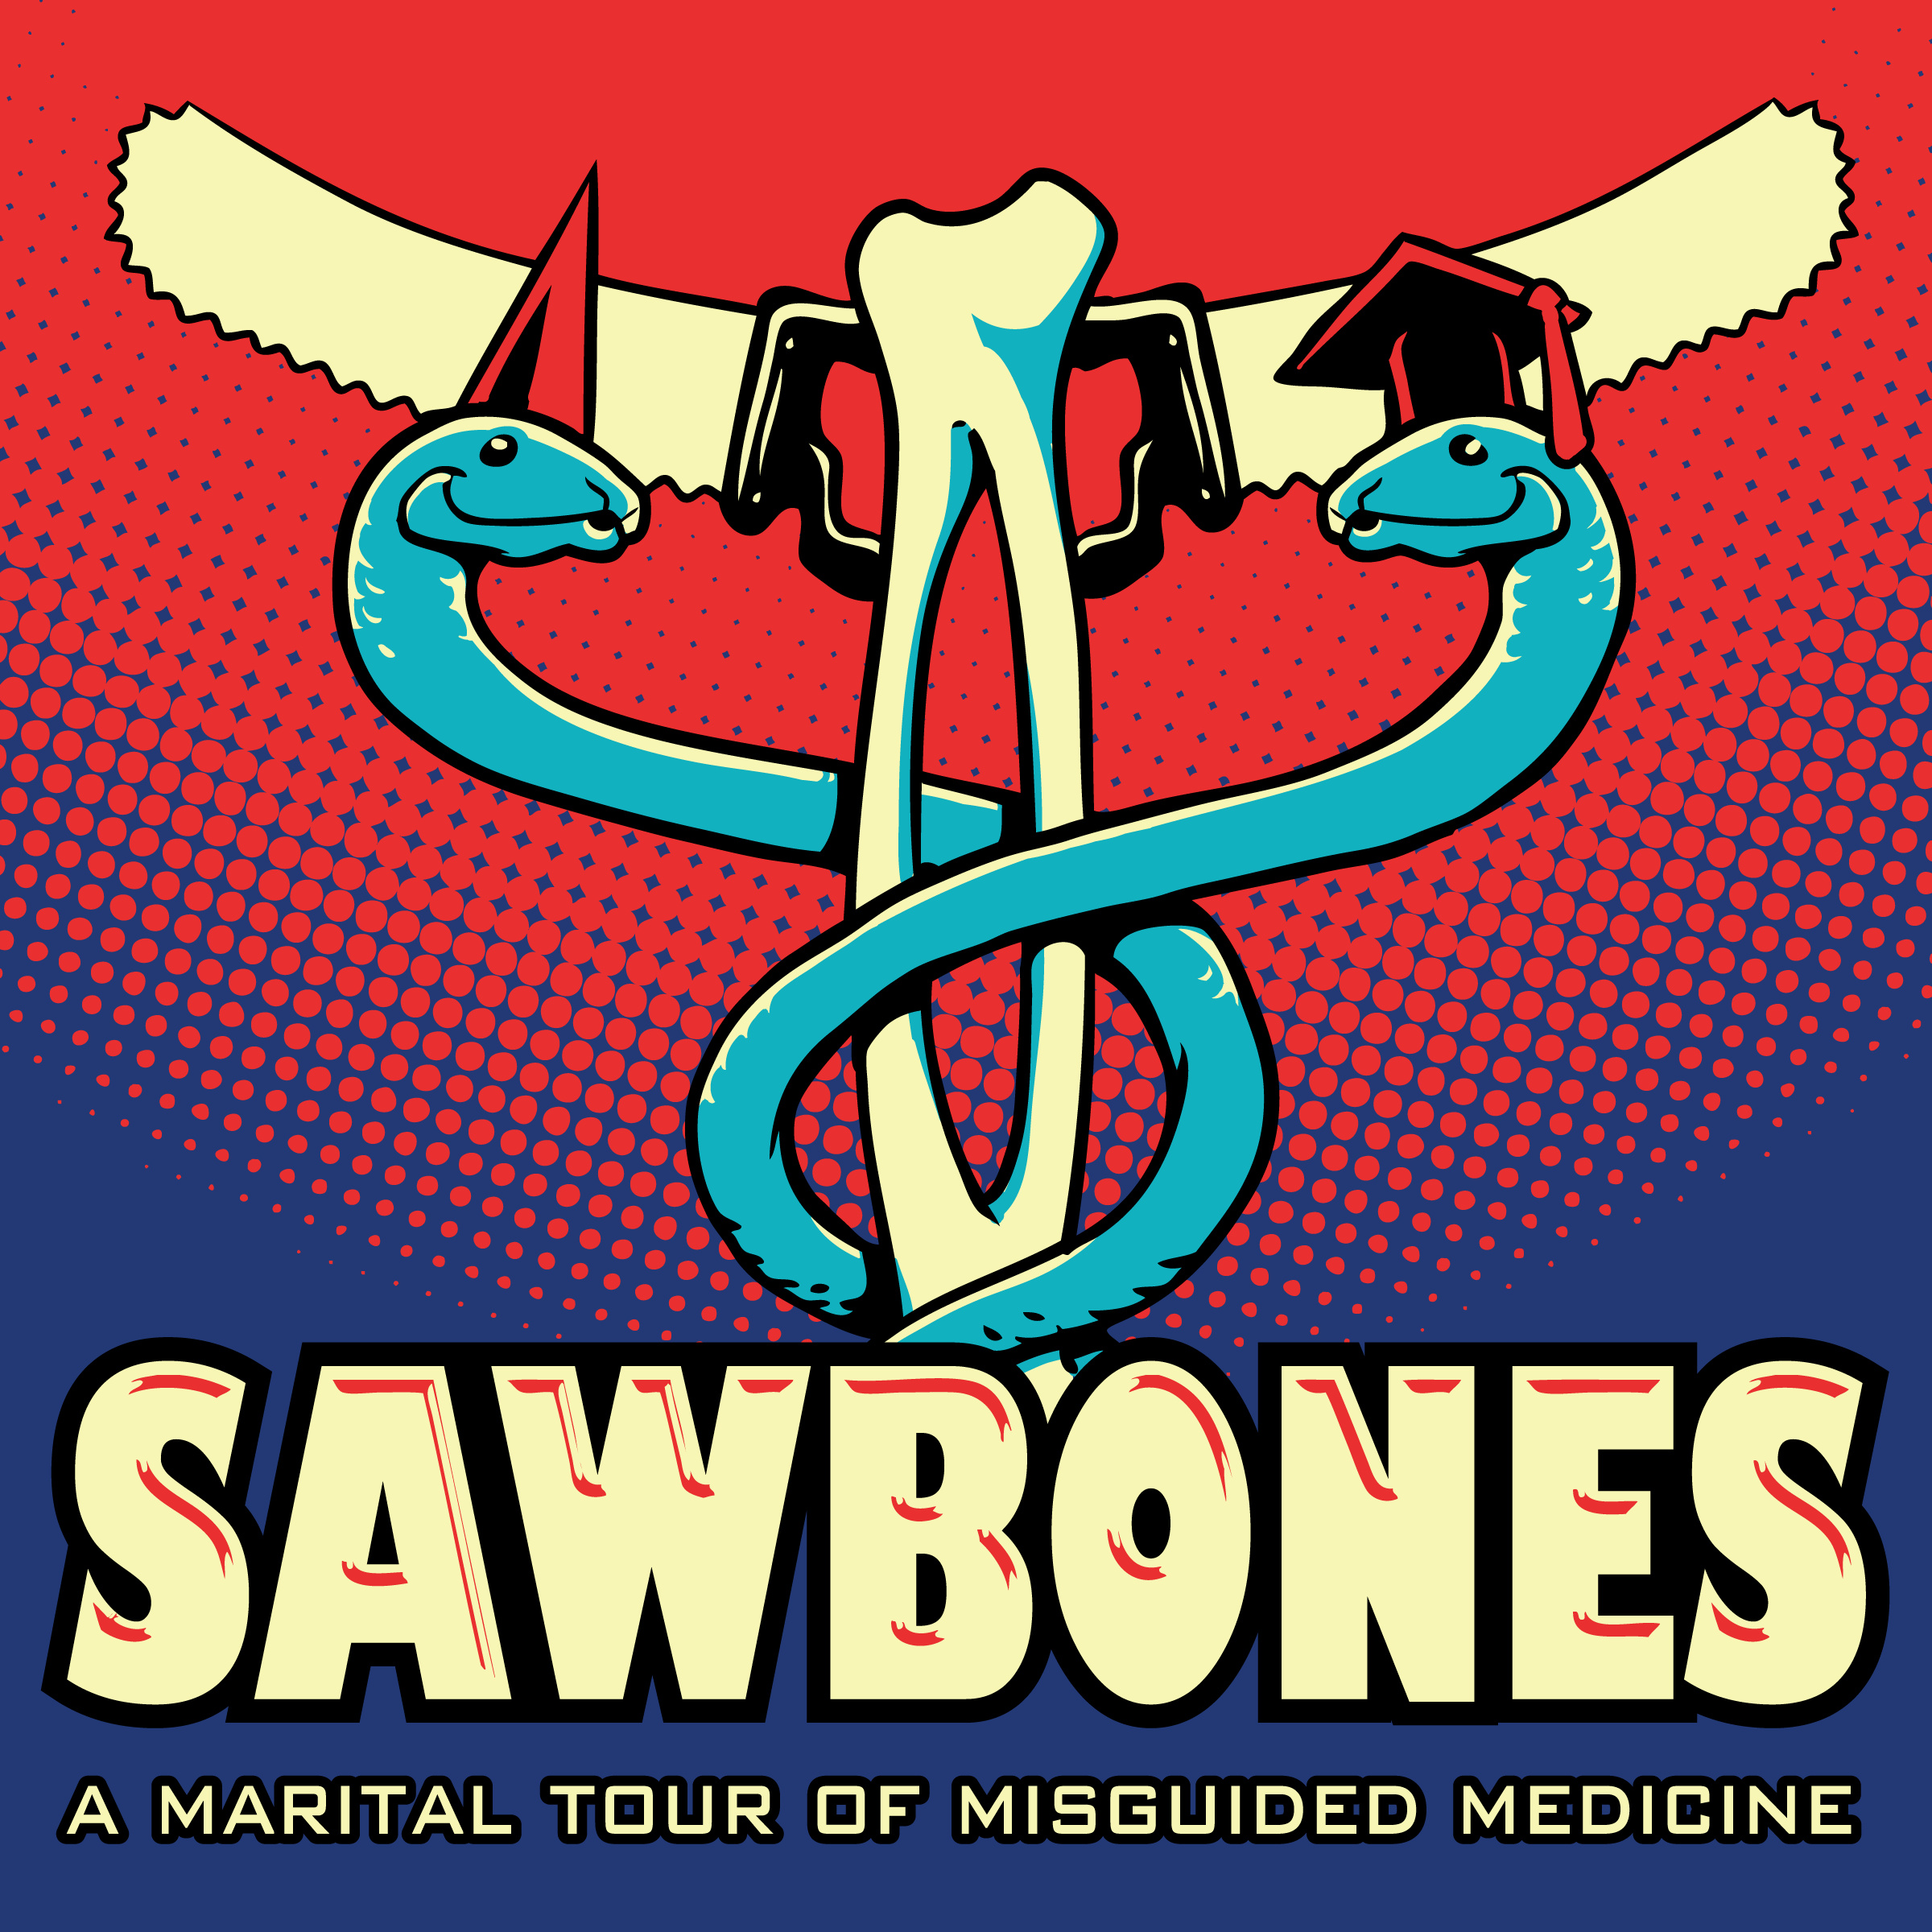 Sawbones: Patient Privacy